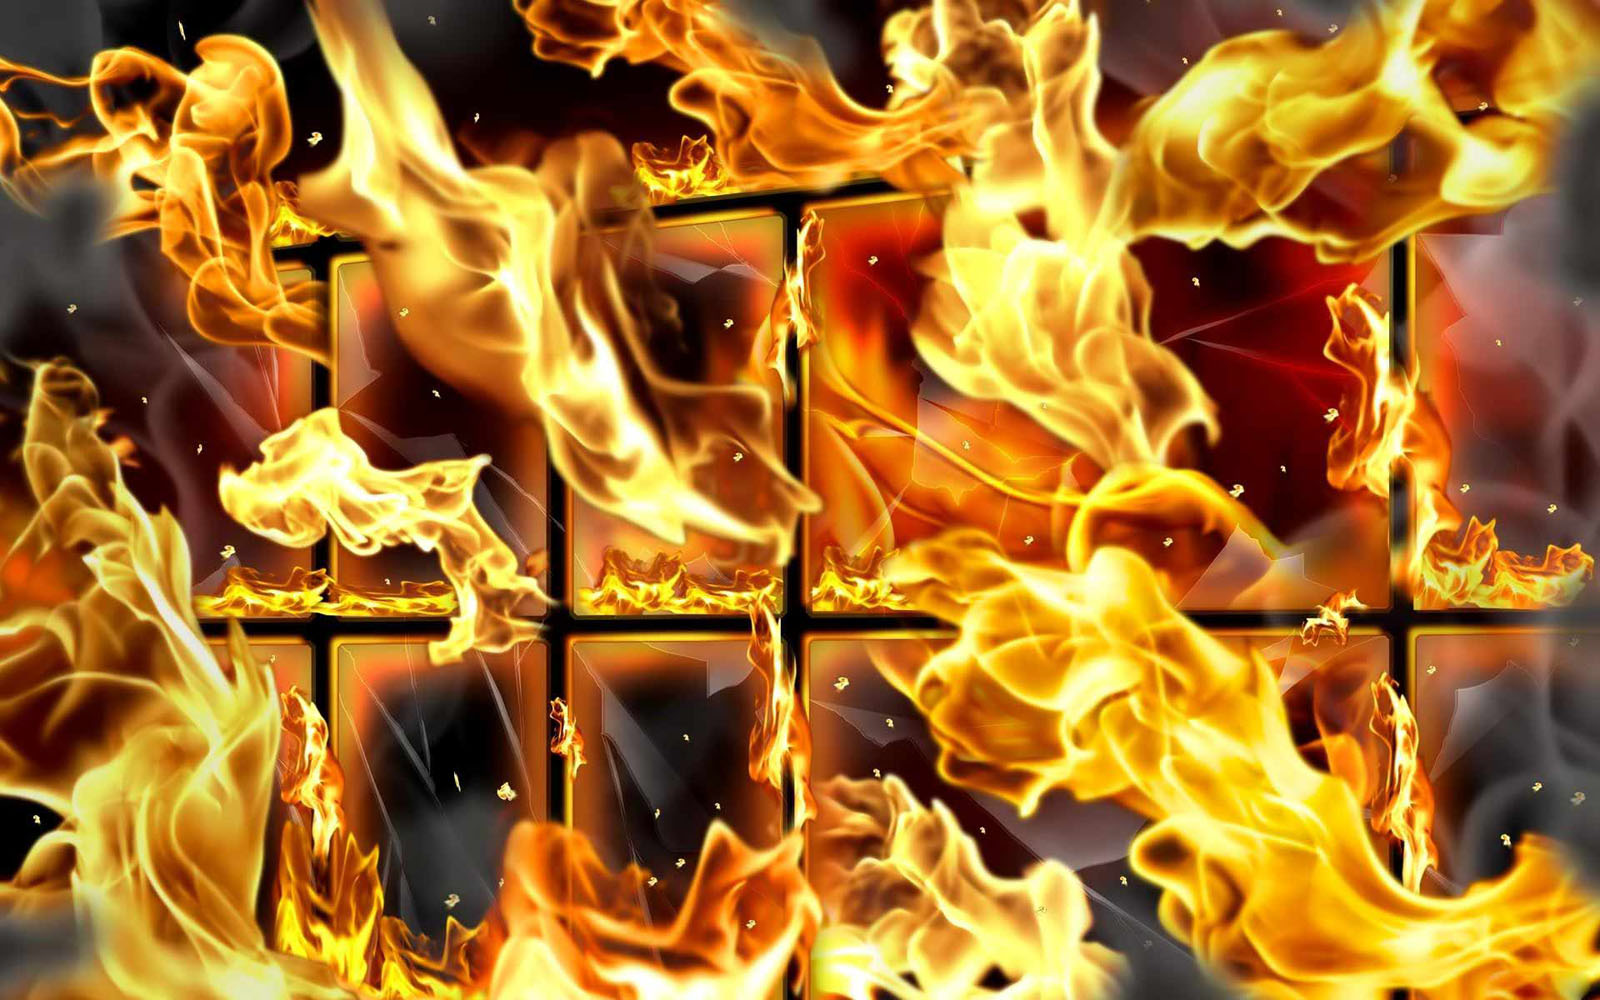 http://4.bp.blogspot.com/-ngQw-61ex9M/T5TAxyoop5I/AAAAAAAACIo/29XY2Nni_mk/s1600/Abstract+Fire+Wallpapers+2.jpg